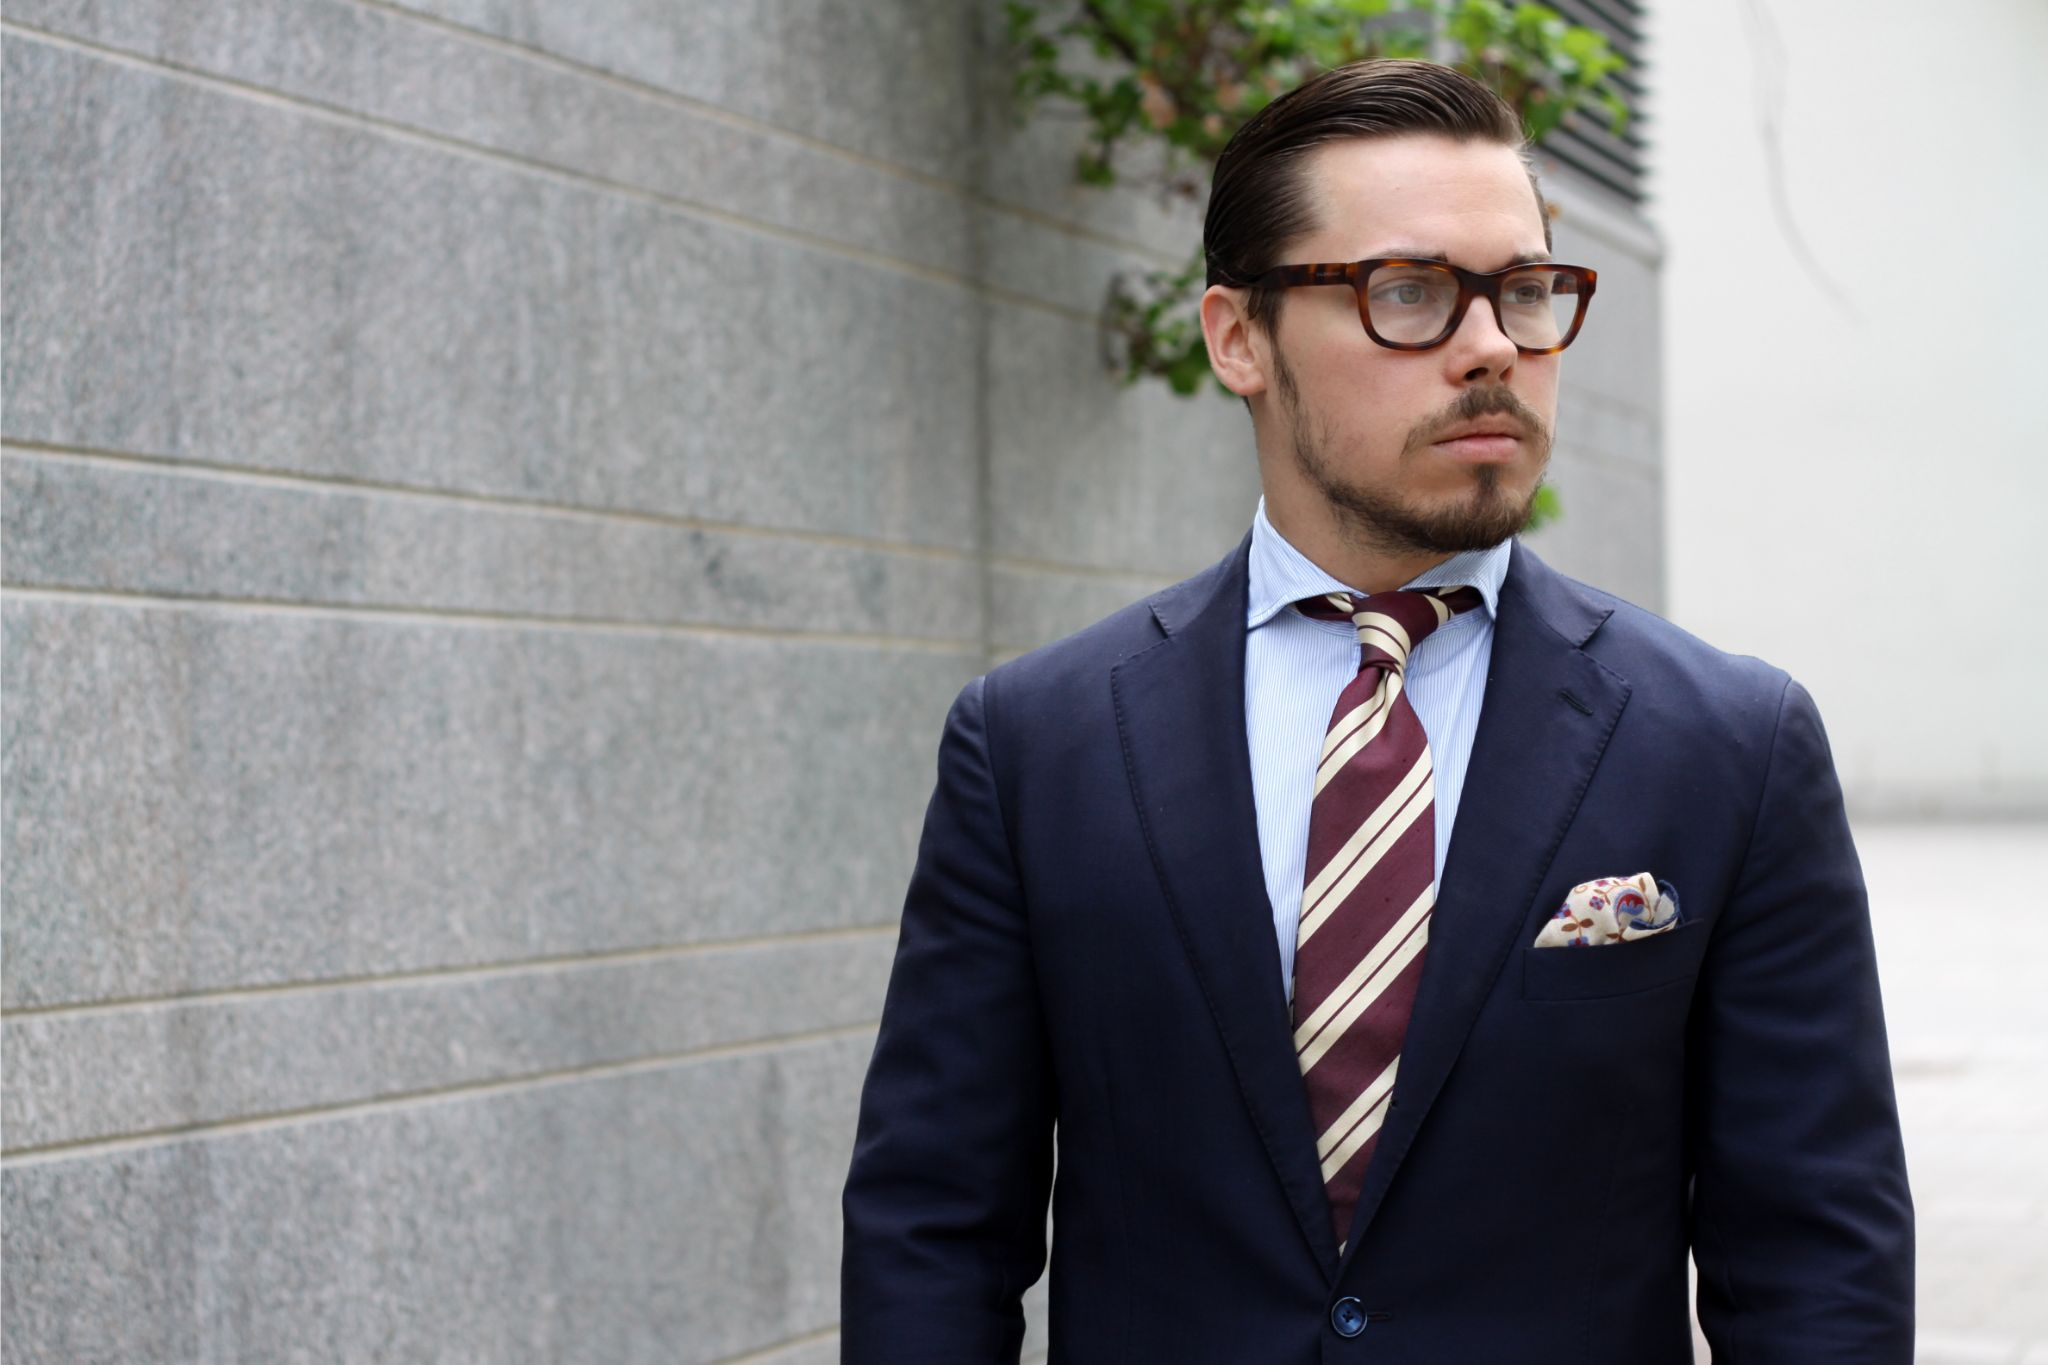 Burgundy accessories - fully appropriate for business wear